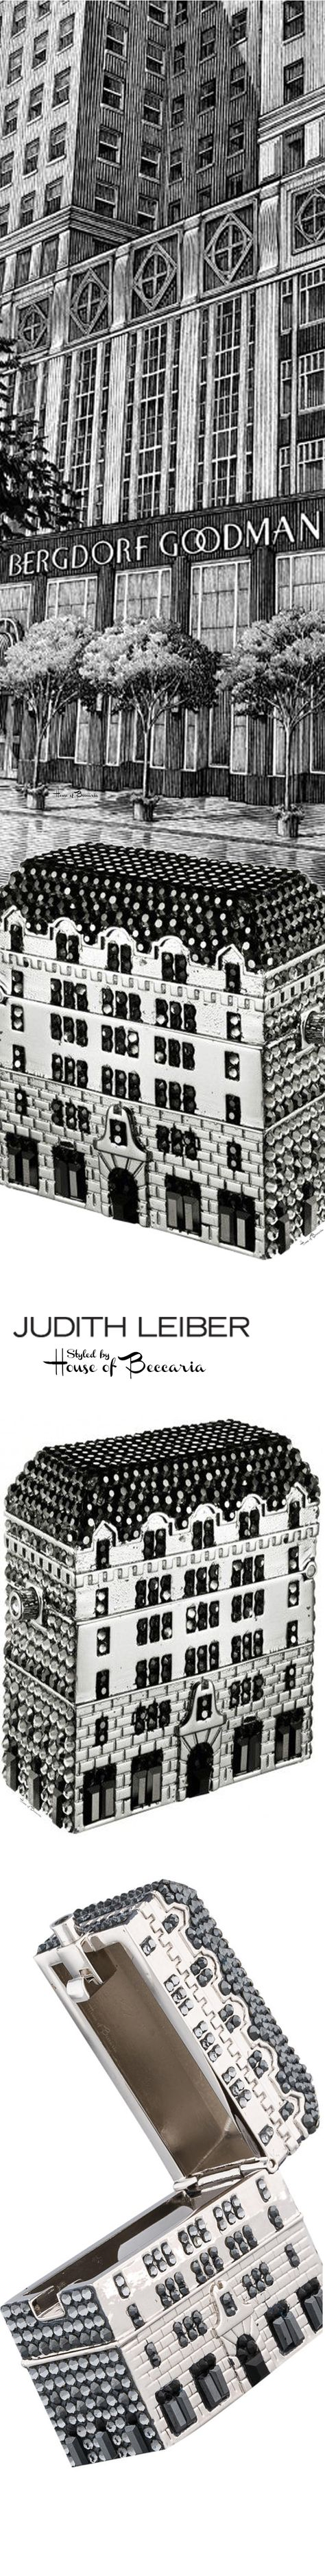 ~Australian Crystal Encrusted Pill Box Designed By Judith Leiber. A Bergdorf Goodman Exclusive, Designed In The Shape Of Their Iconic Building Located at 754 5th Ave., NYC | House of Beccaria